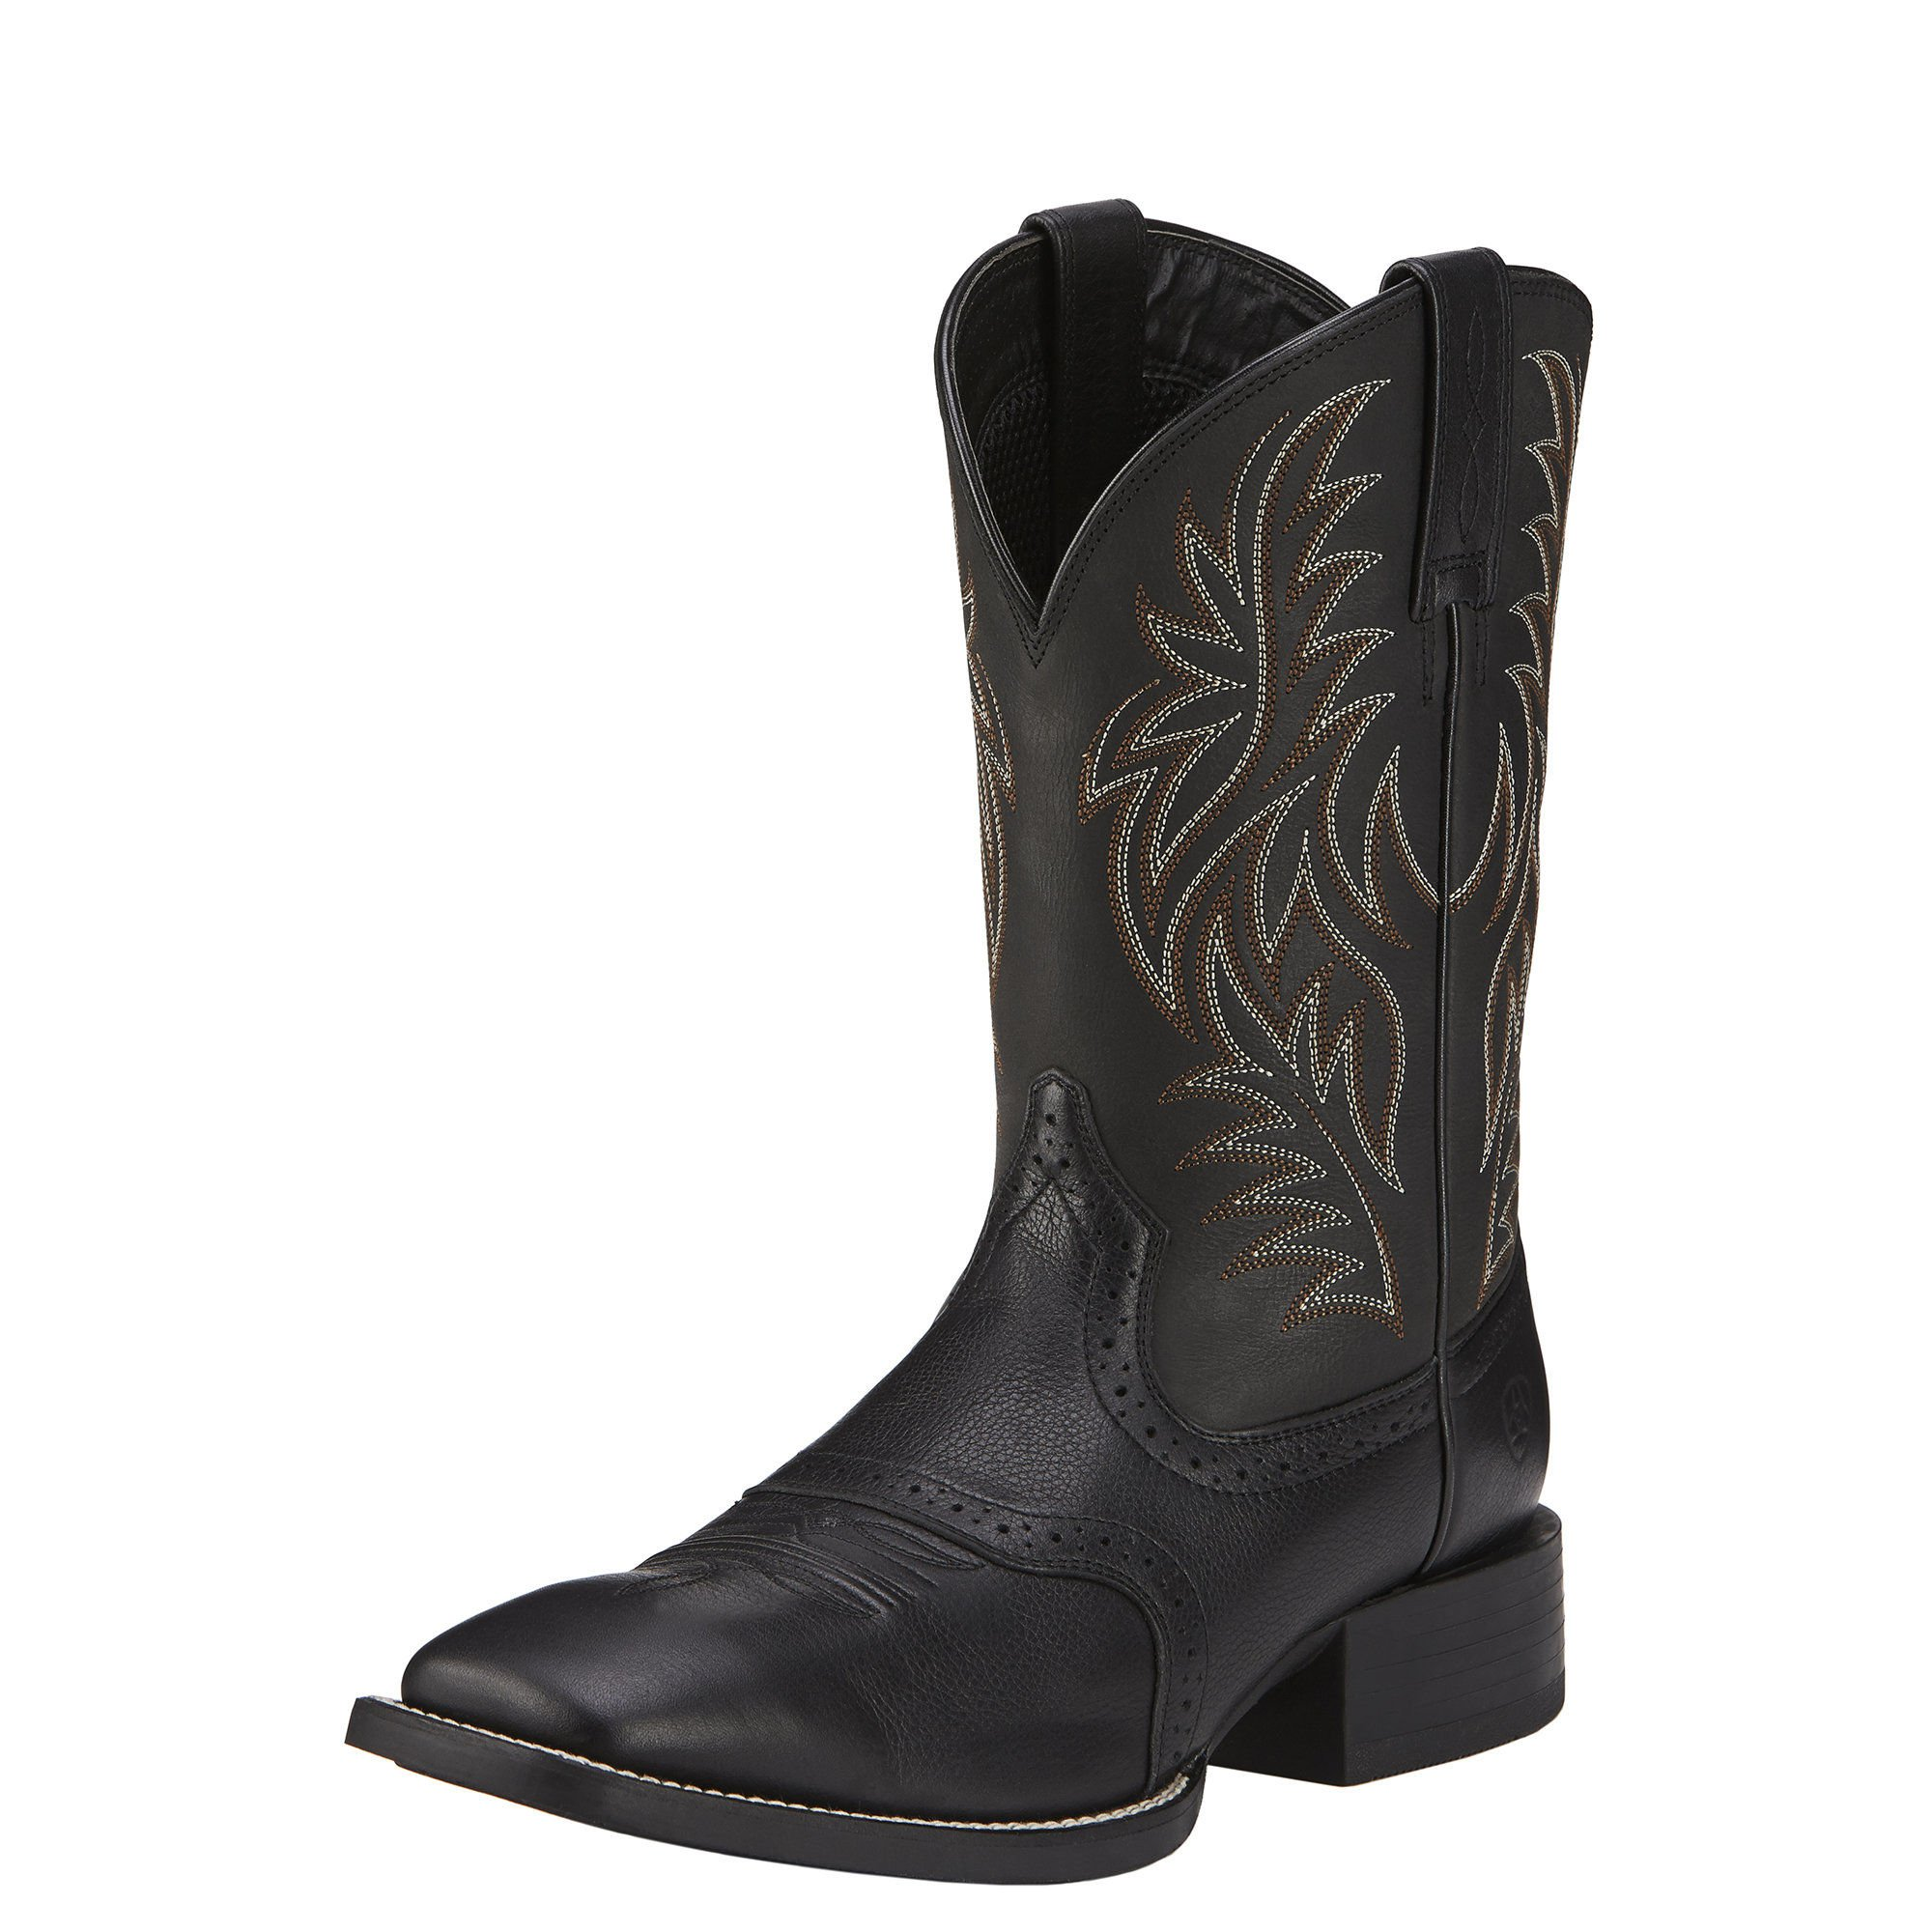 Ariat Men's Sport Western Cowboy Boot, Black, 10.5 EE US